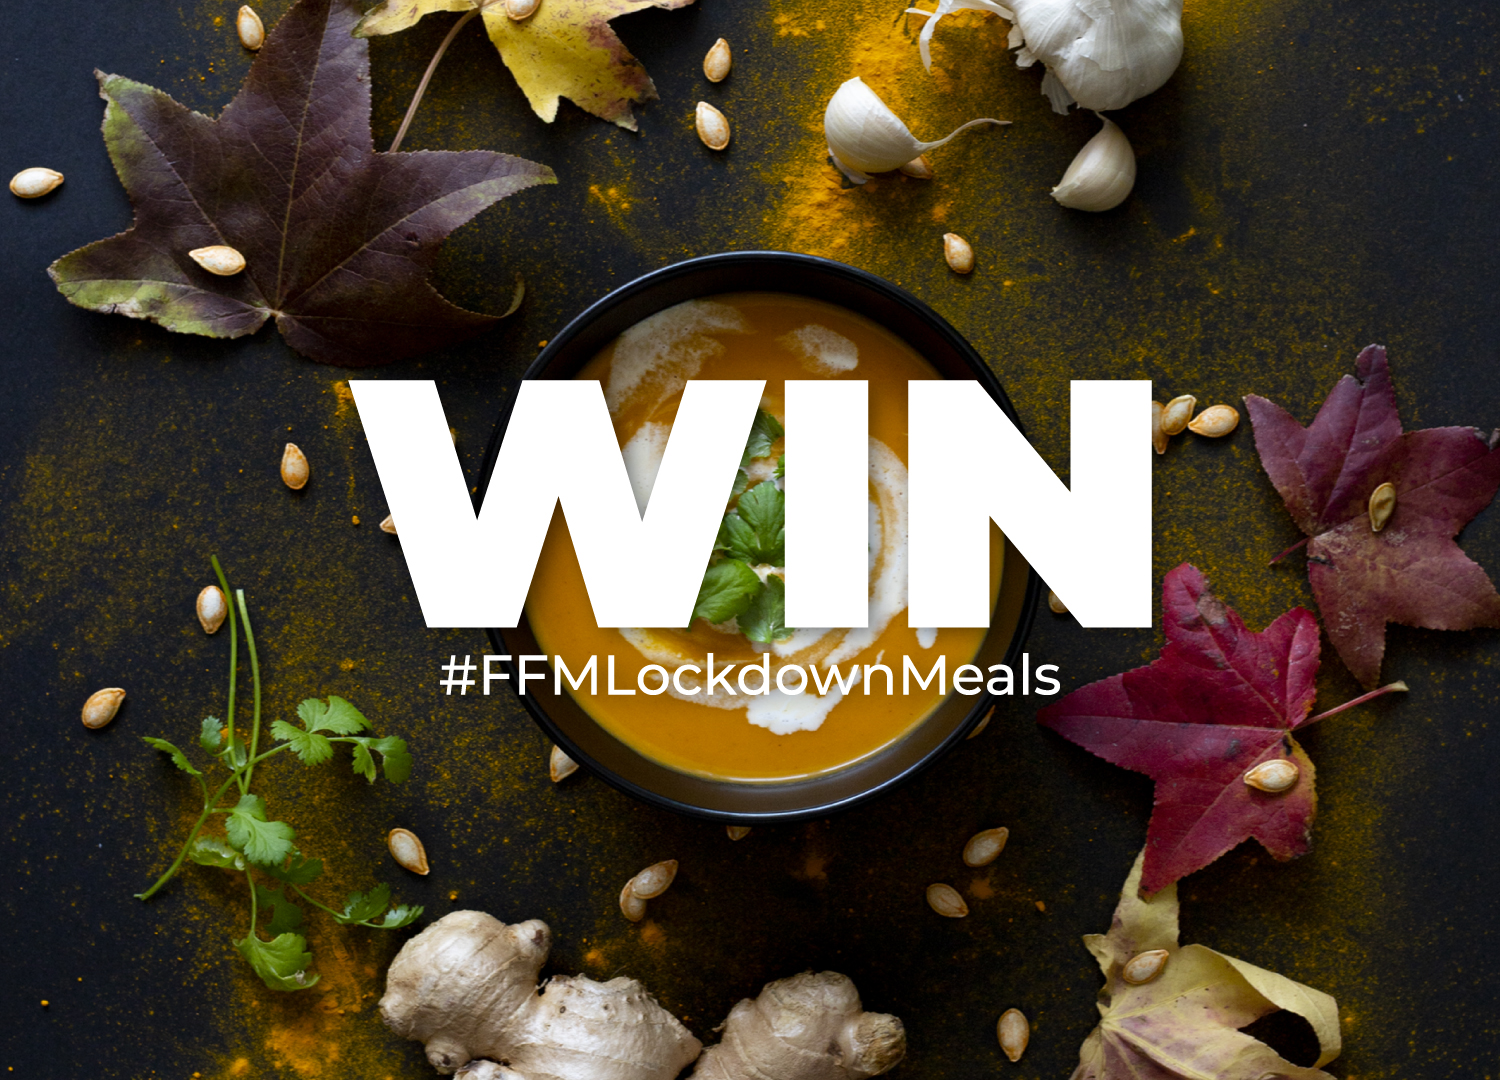 Stand a chance to win with Food For Mzansi by showing off your best lockdown cooking skills. Photo: Dane Vermeulen.